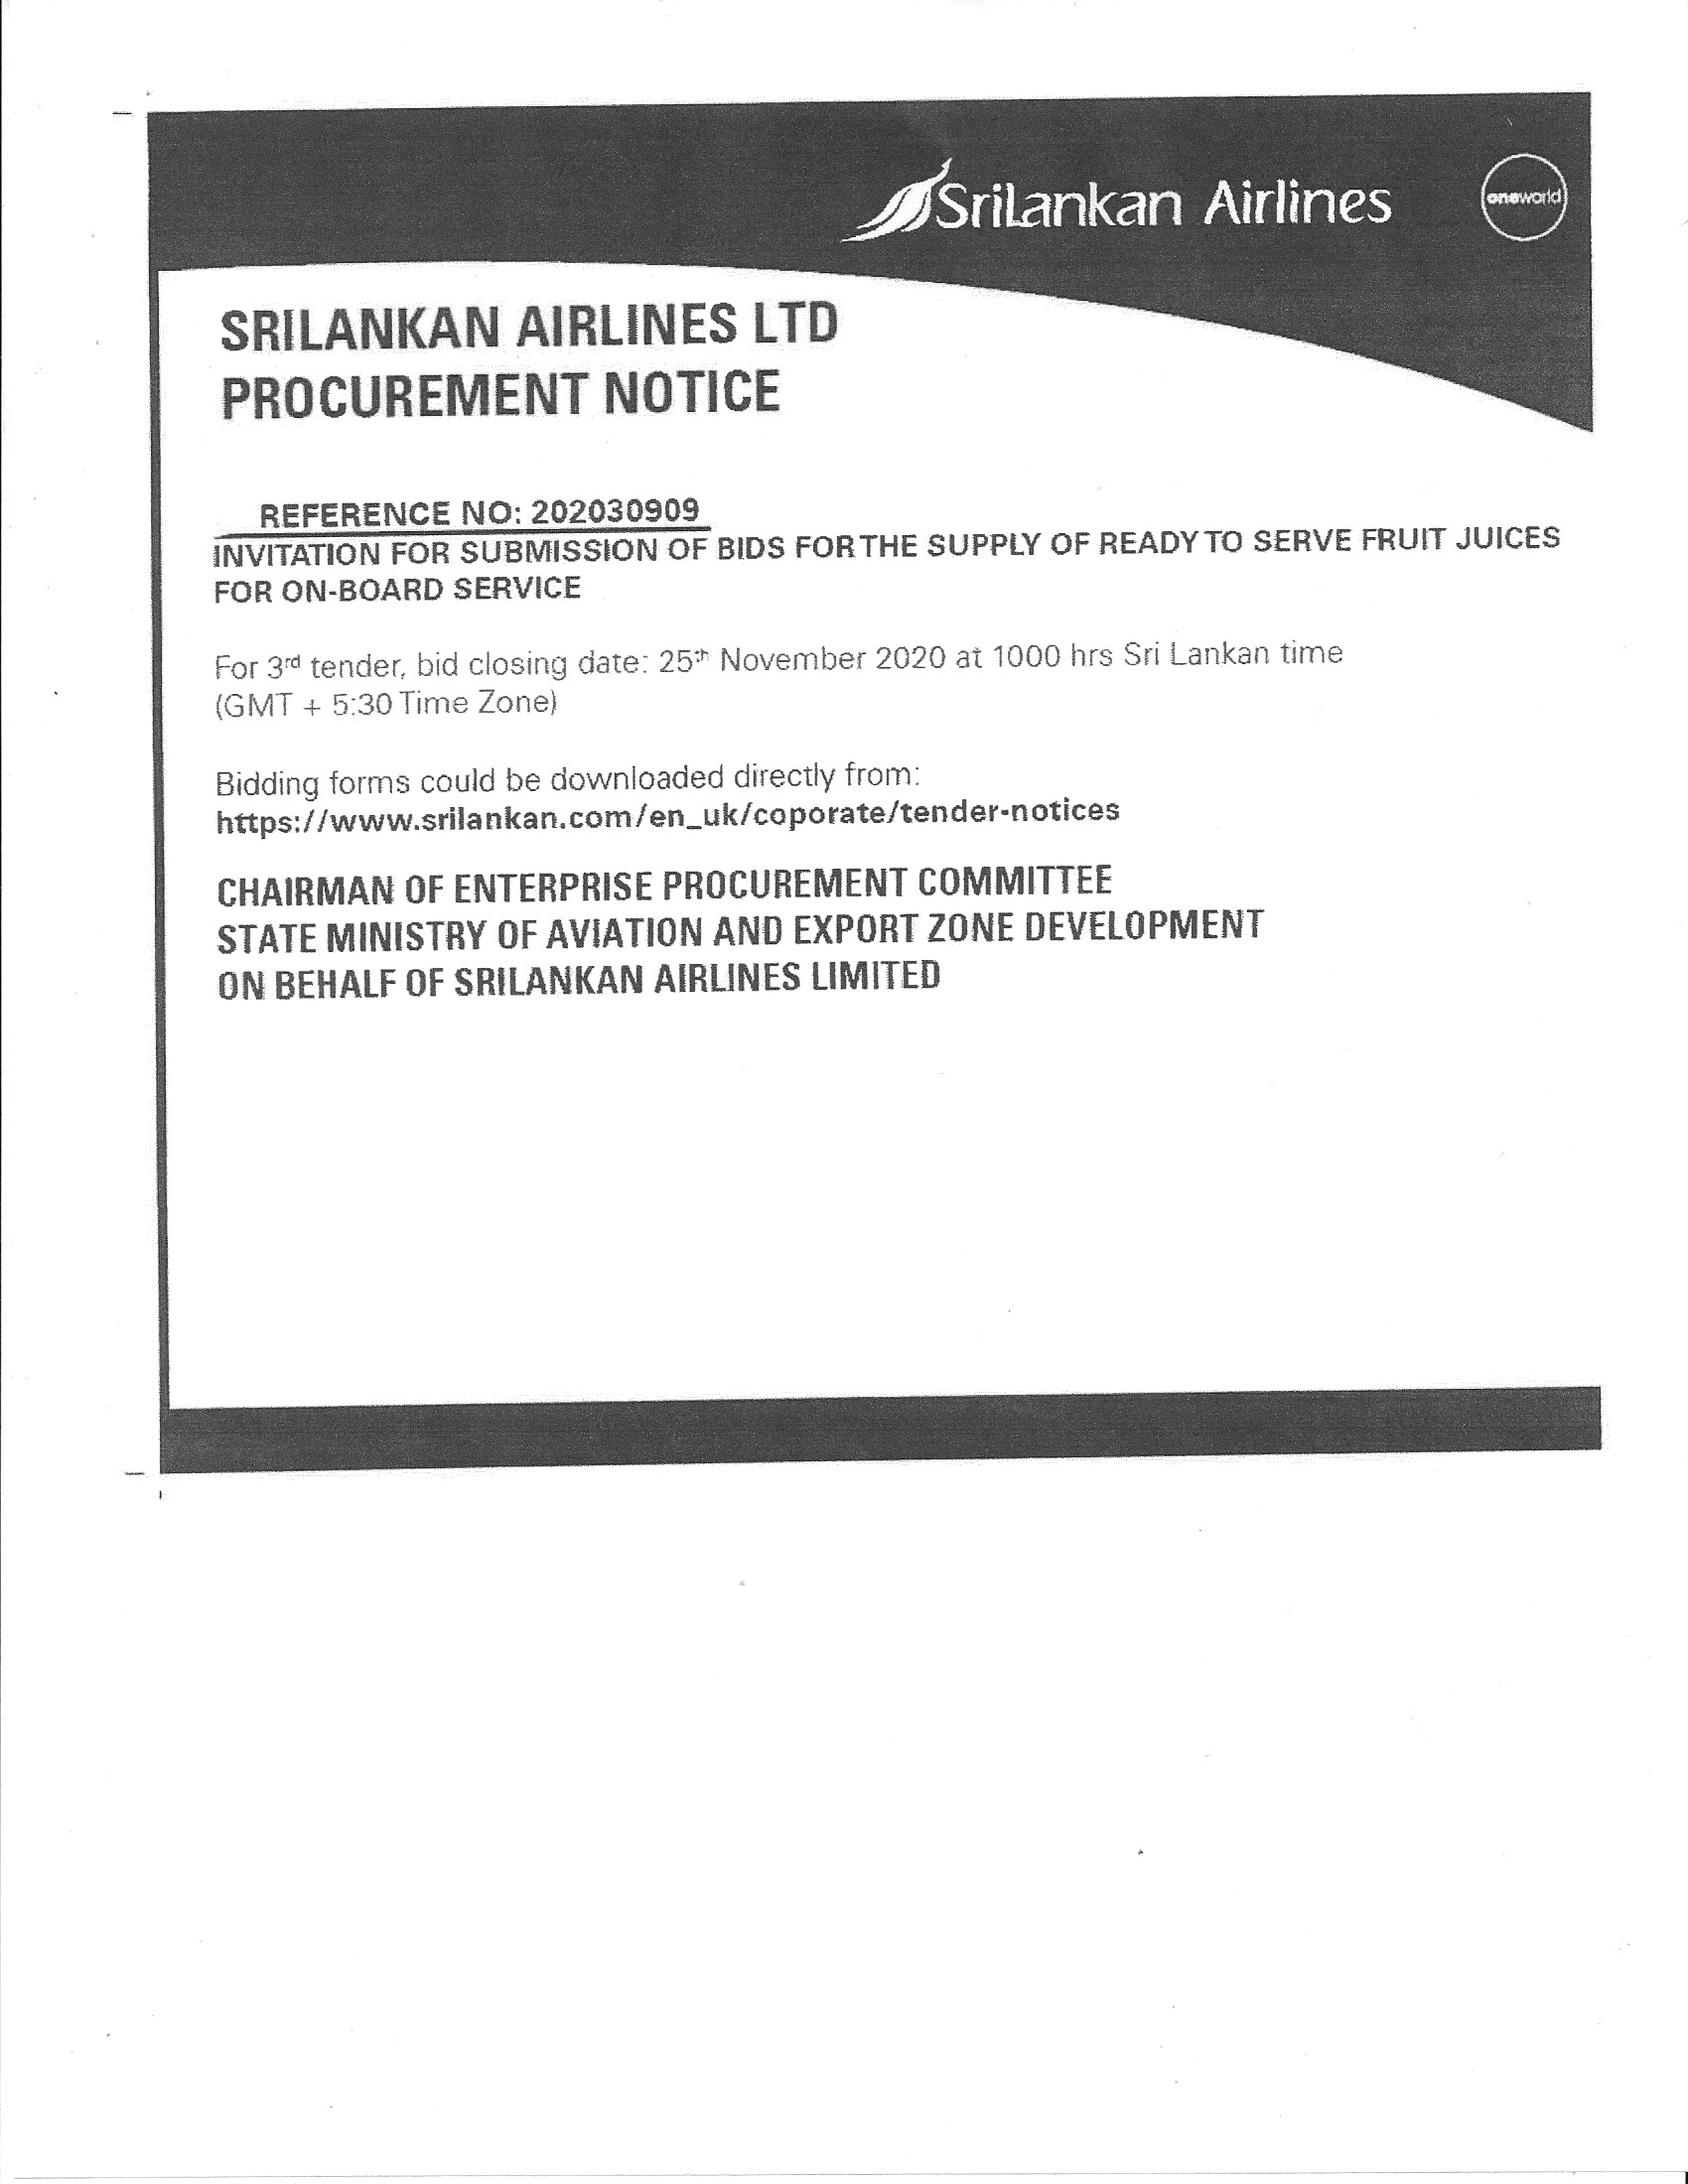 supply of fruit juice by SriLankan Airlines